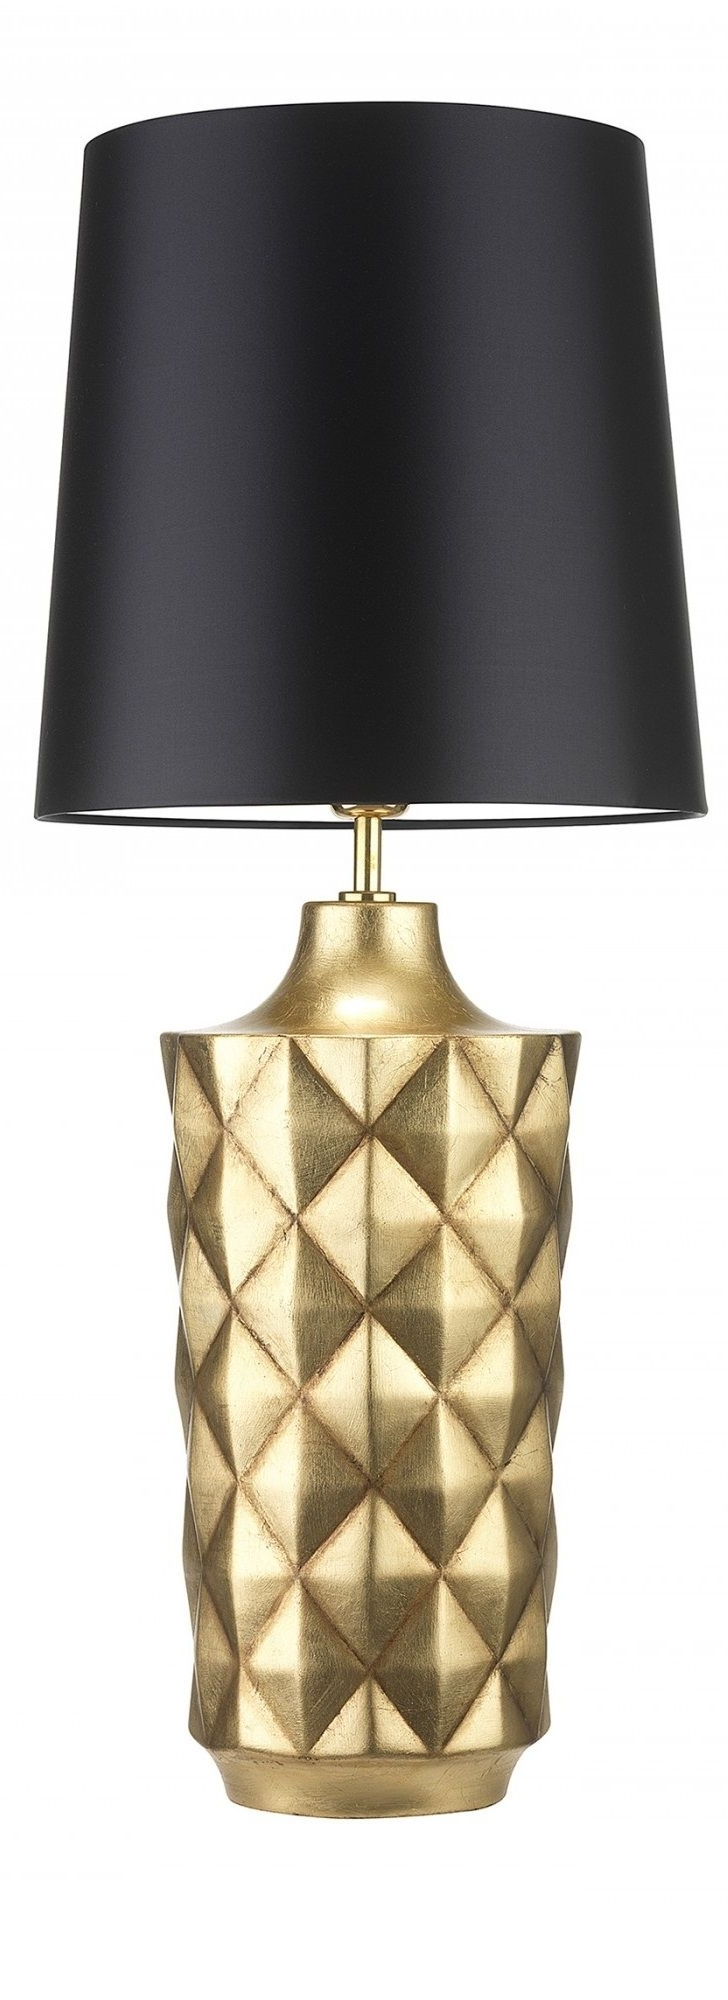 373 Best Lighting – Table Lamps Images On Pinterest (View 2 of 20)